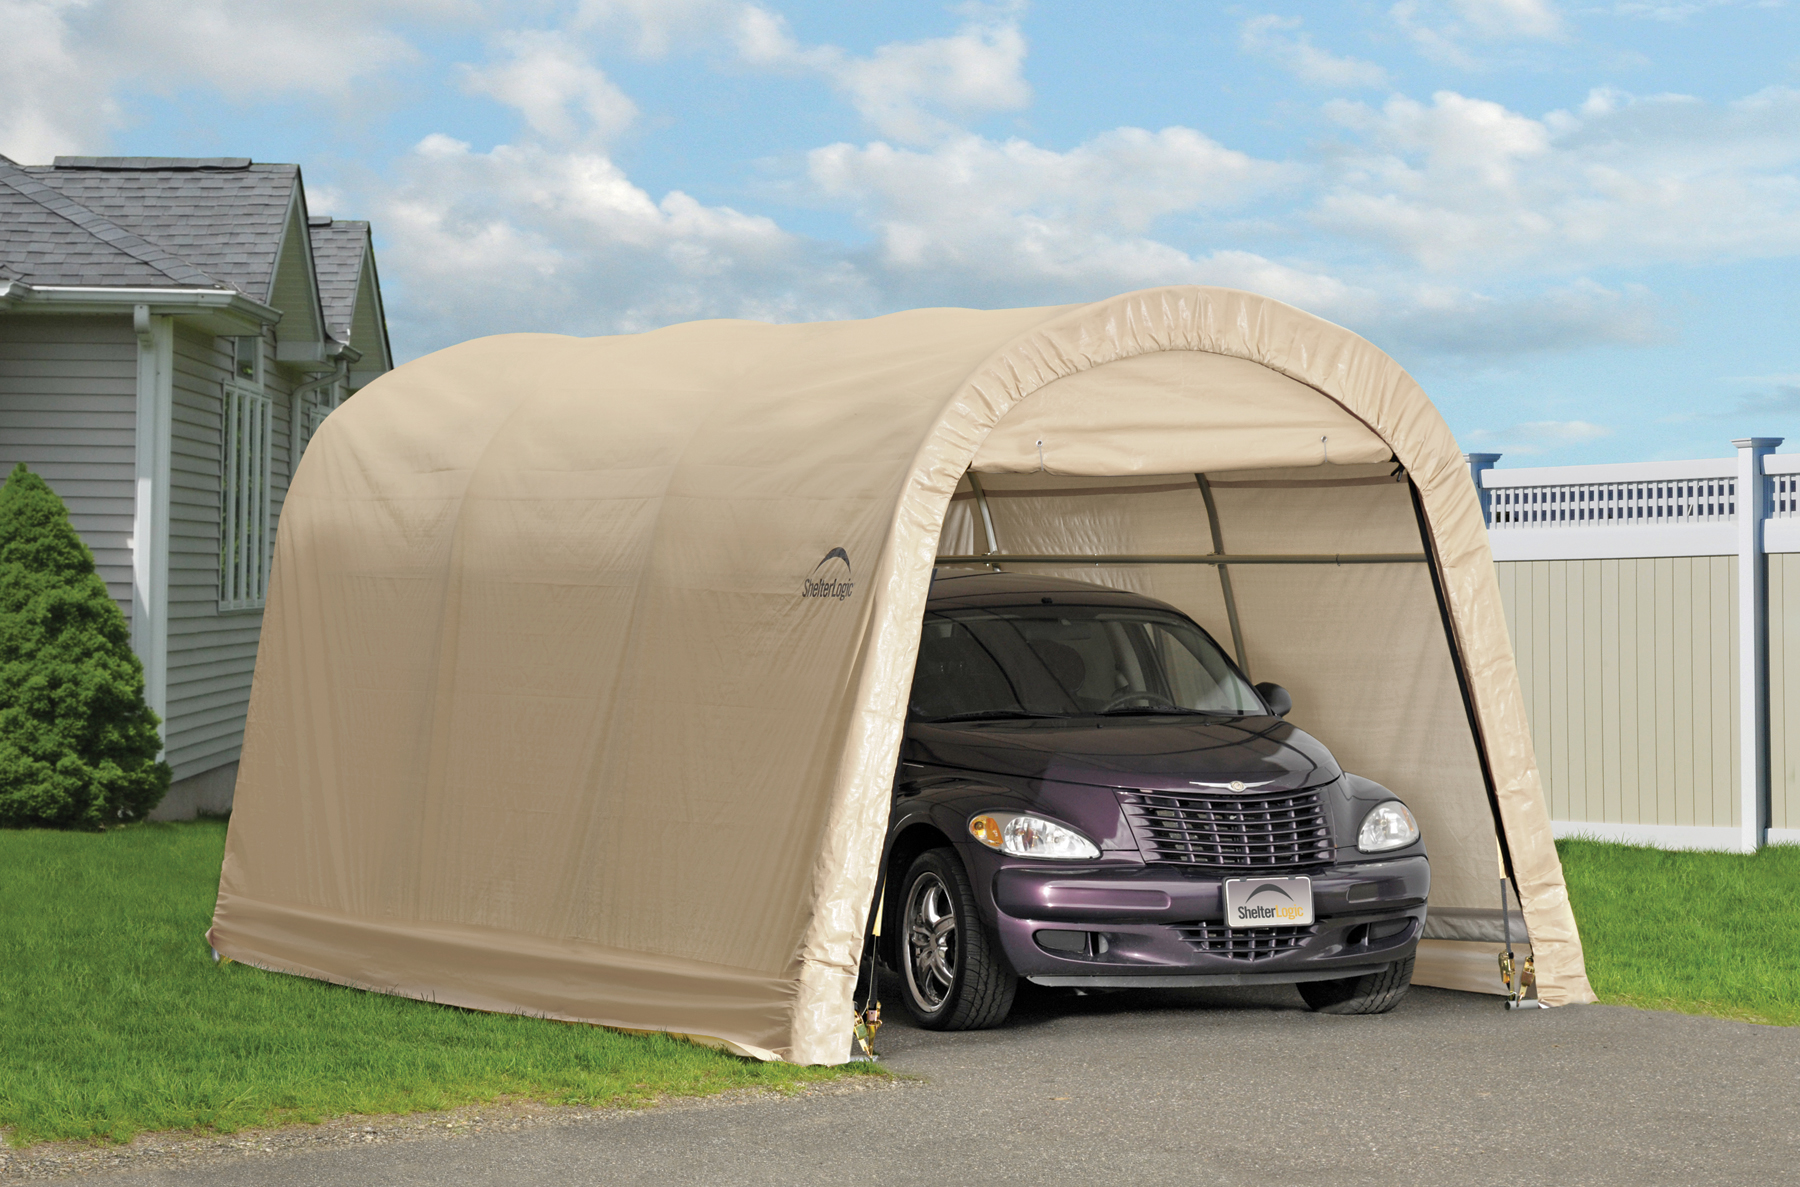 buy shelterlogic 10x15 carport canopy 10x15 & Portable Car Garages From Costco? Read This First! | Portable Car ...